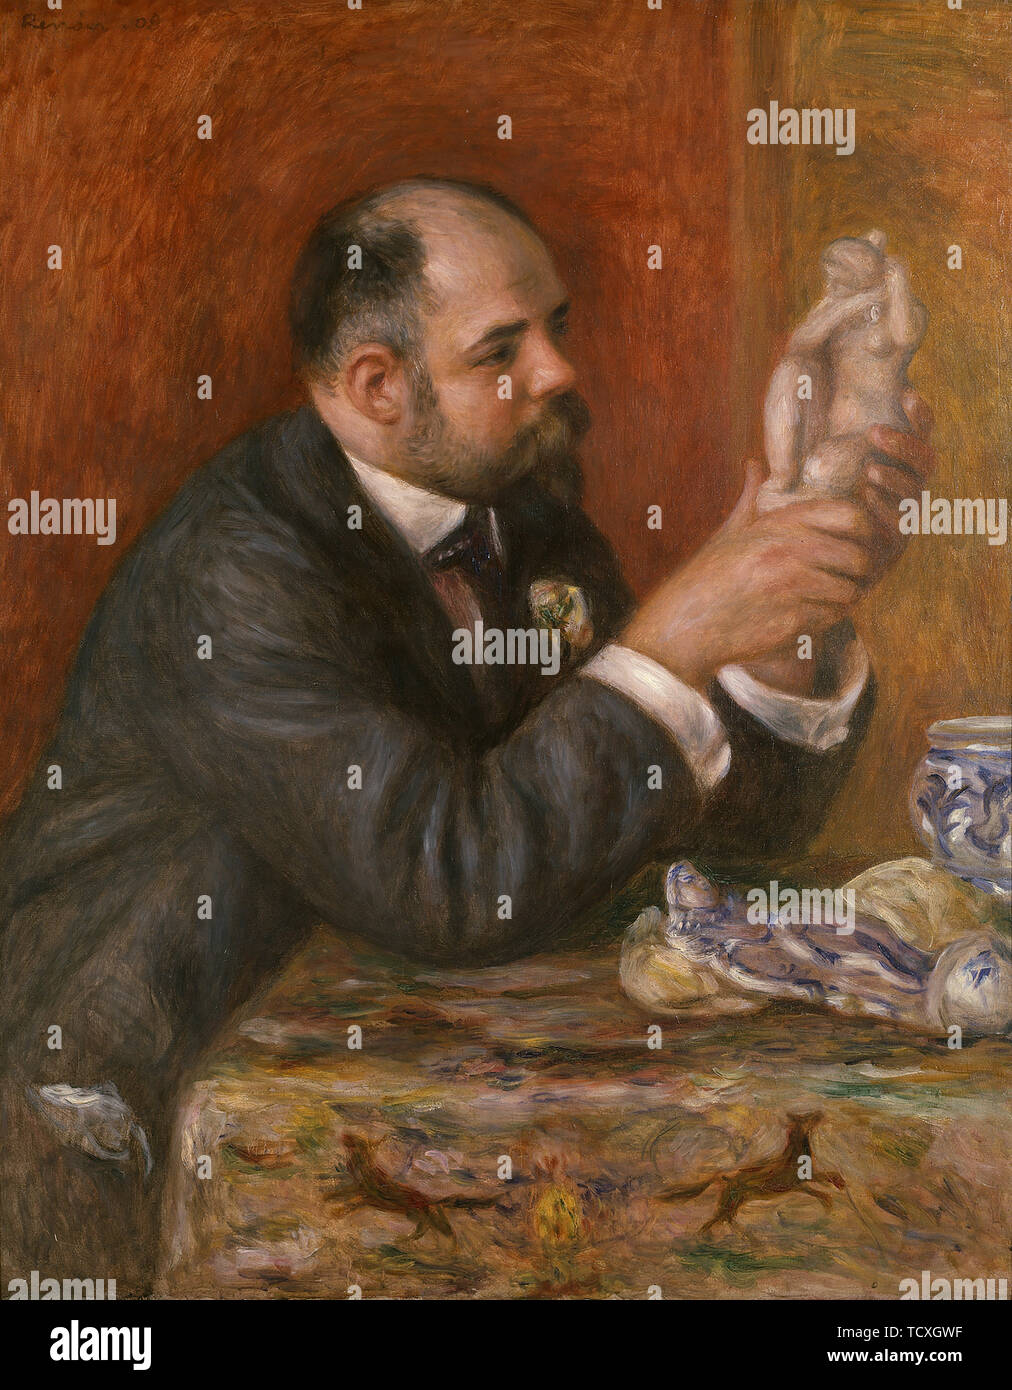 Portrait of Ambroise Vollard (1865-1939), 1908. Found in the Collection of Courtauld Institute of Art, London. - Stock Image